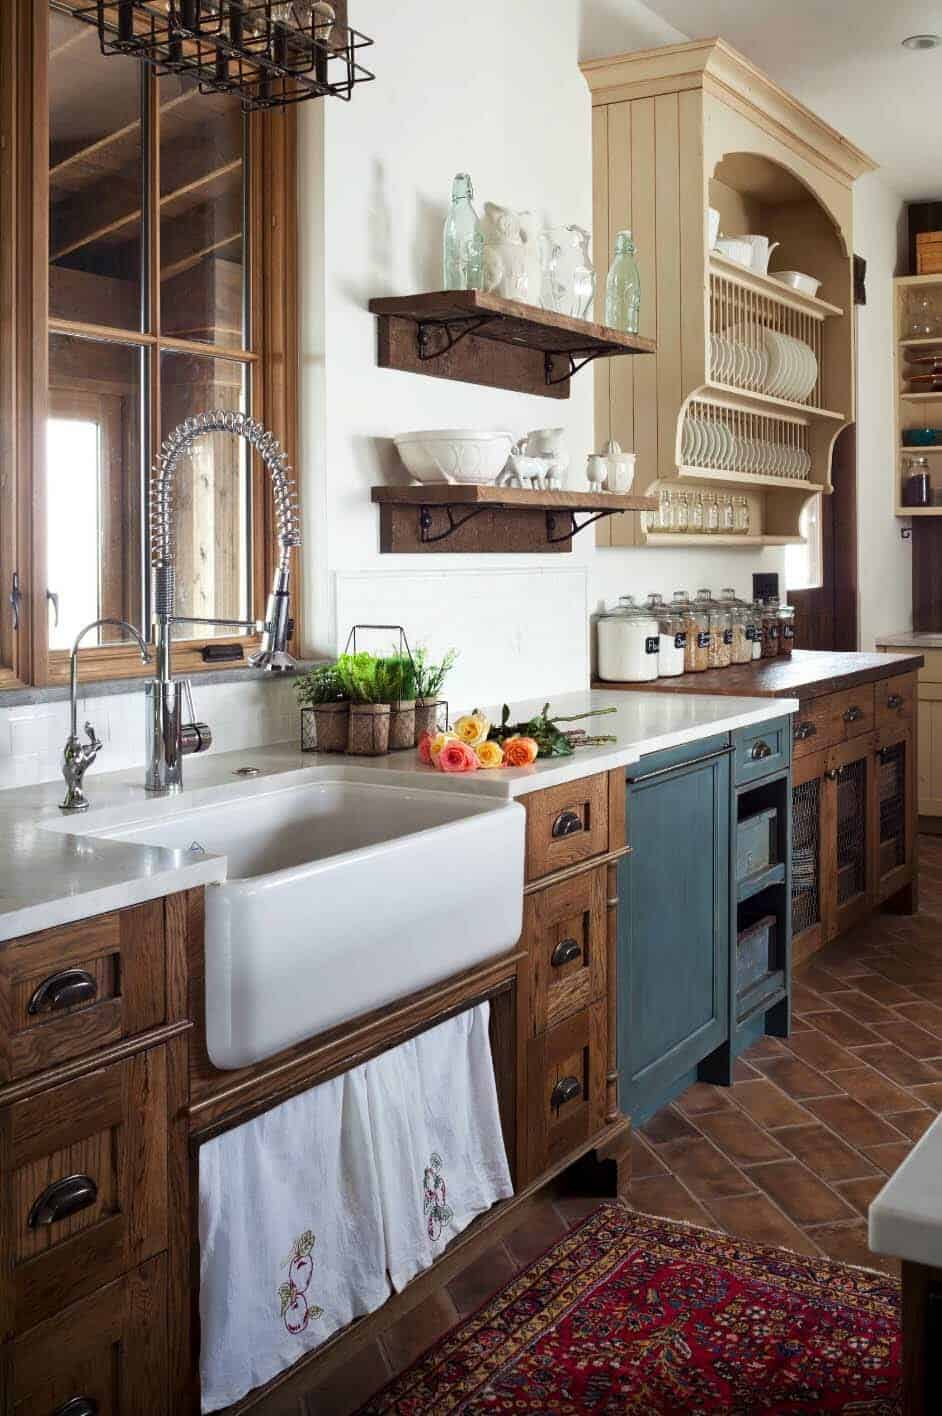 Restoration Hardware Vintage French Farmhouse Sconce 35 Amazingly Creative And Stylish Farmhouse Kitchen Ideas